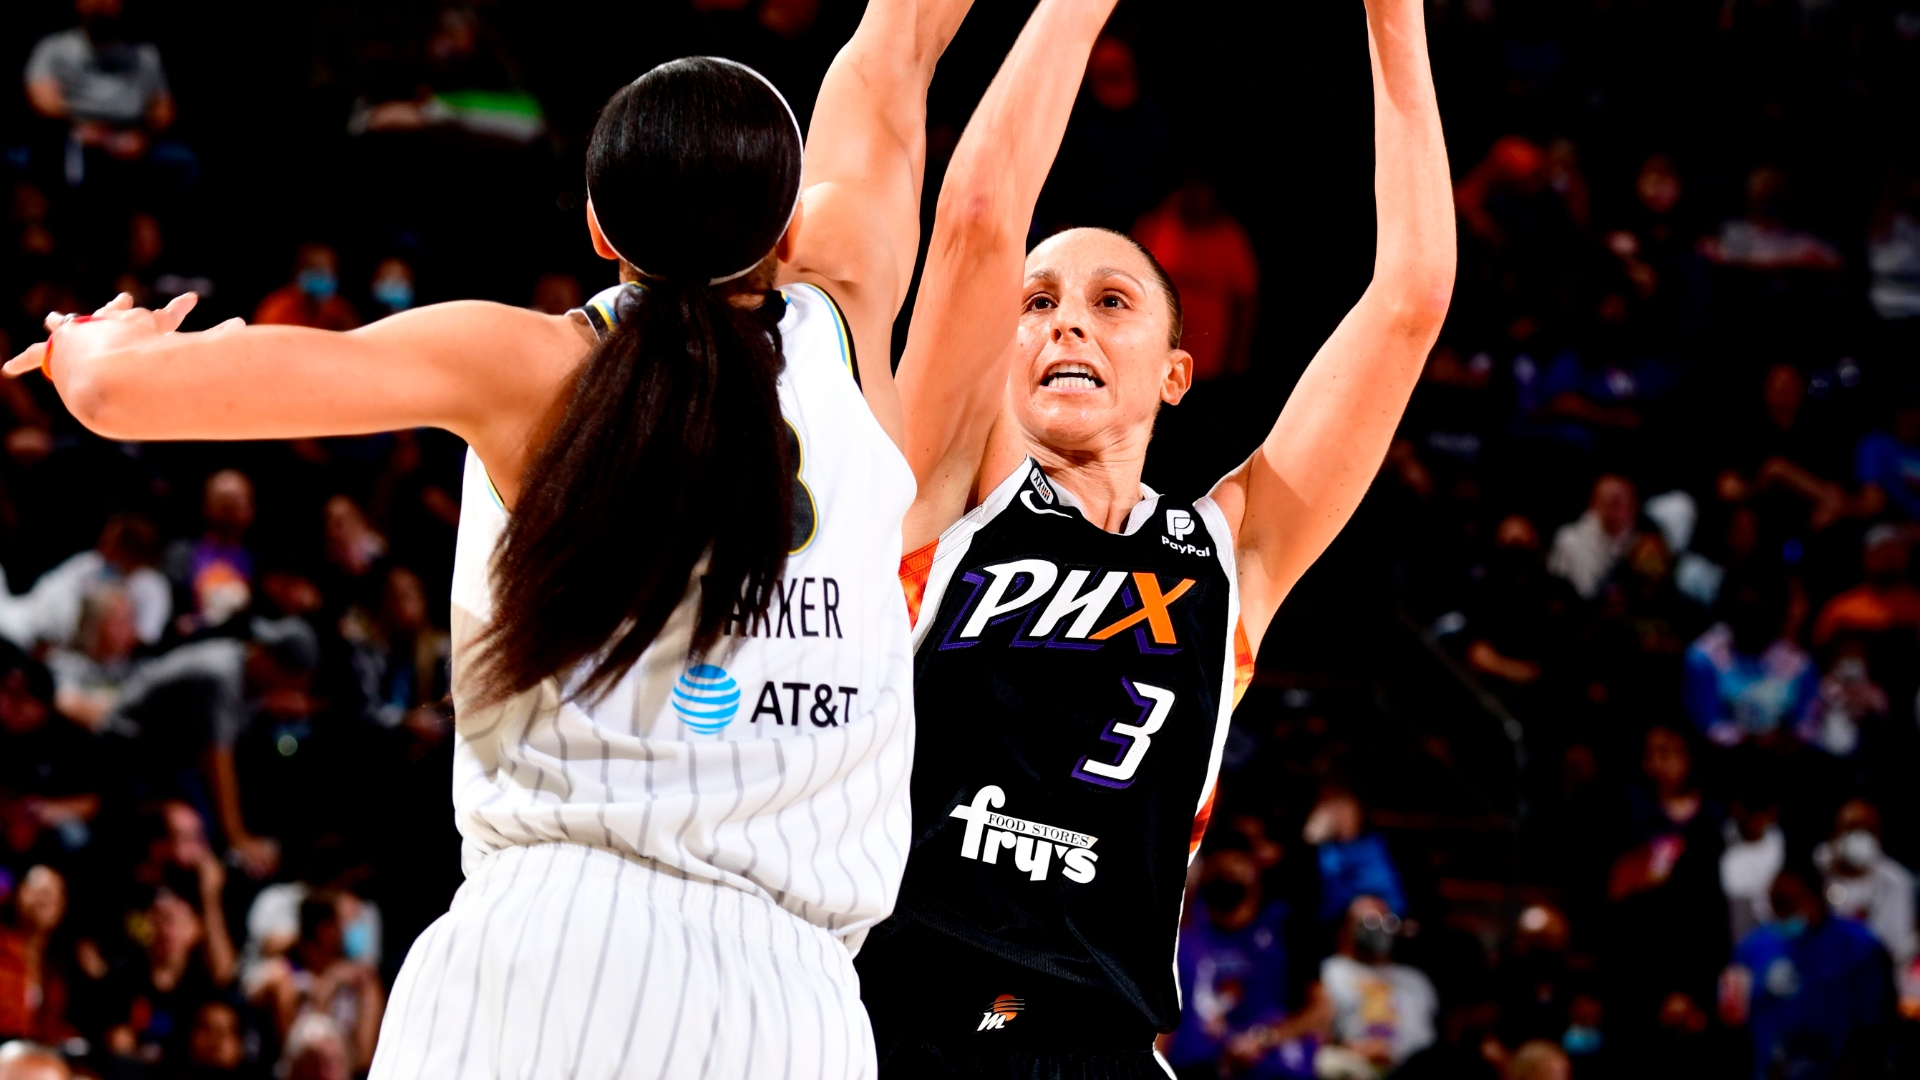 WNBA Finals 2021: Thrilling Mercury-Sky Game 2 decided in overtime, gets Twitter buzzing